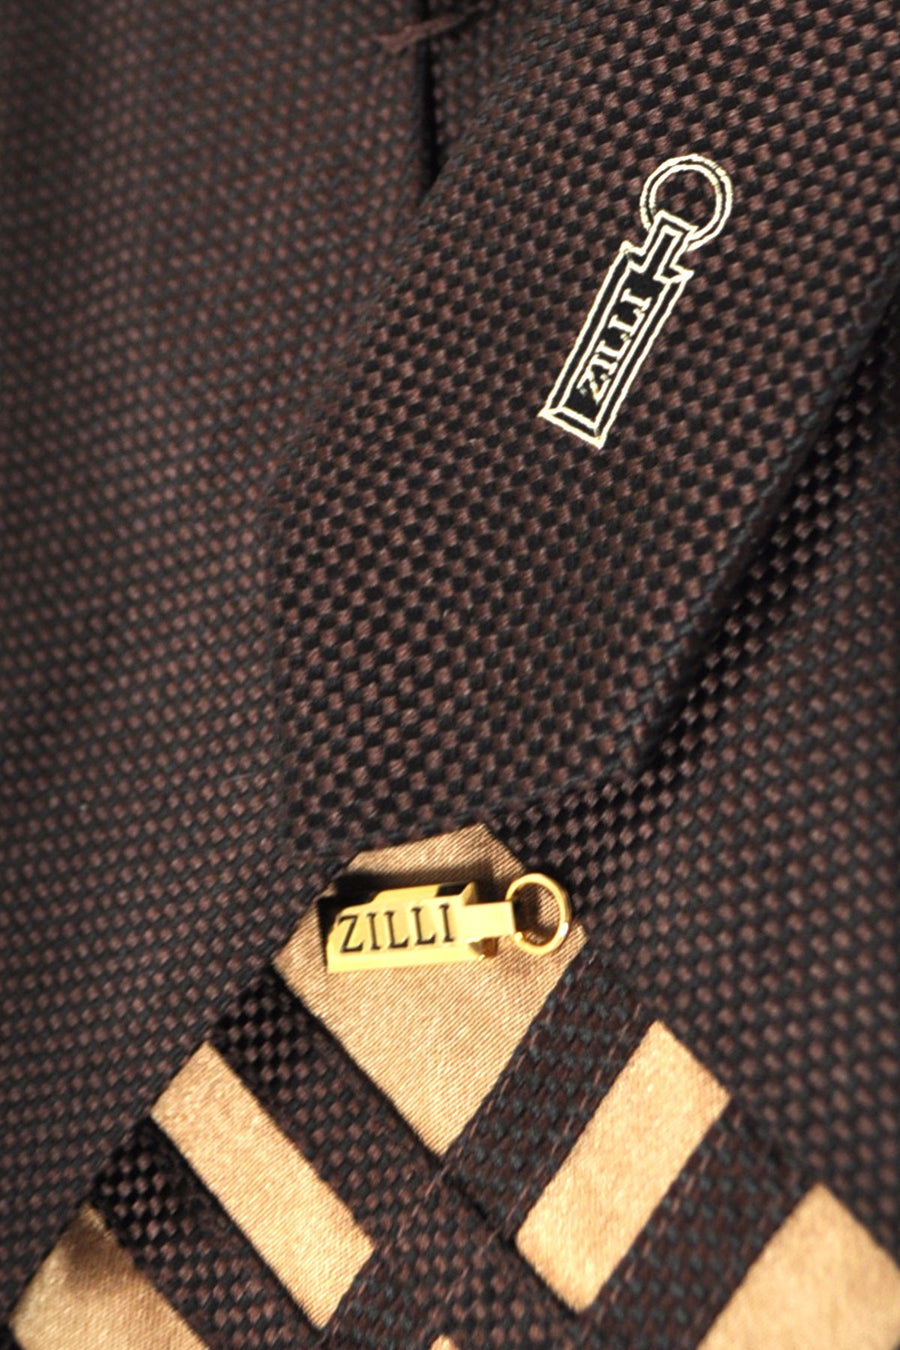 Zilli Tie Brown Black